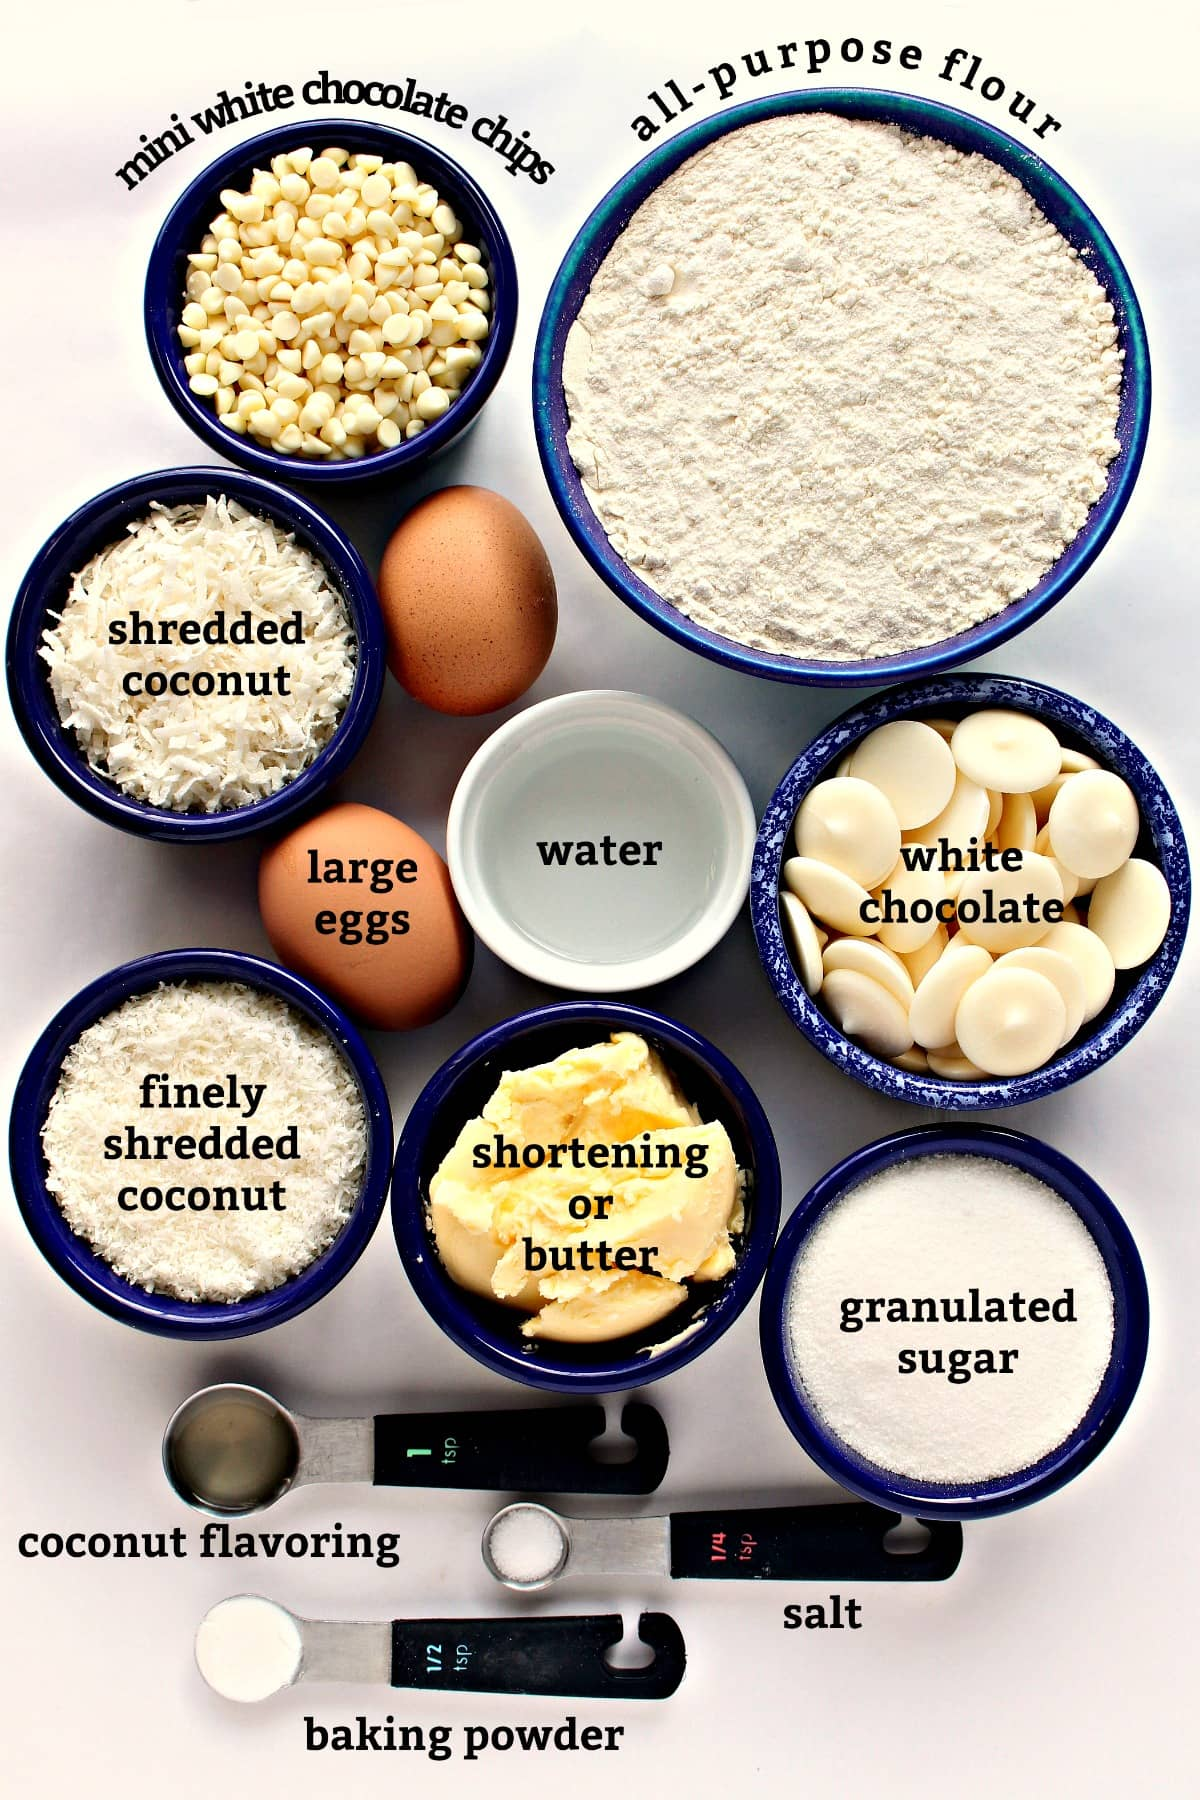 Recipe ingredients with text labels: chips, flour, coconut, eggs, white chocolate, shortening, sugar, baking powder, salt.